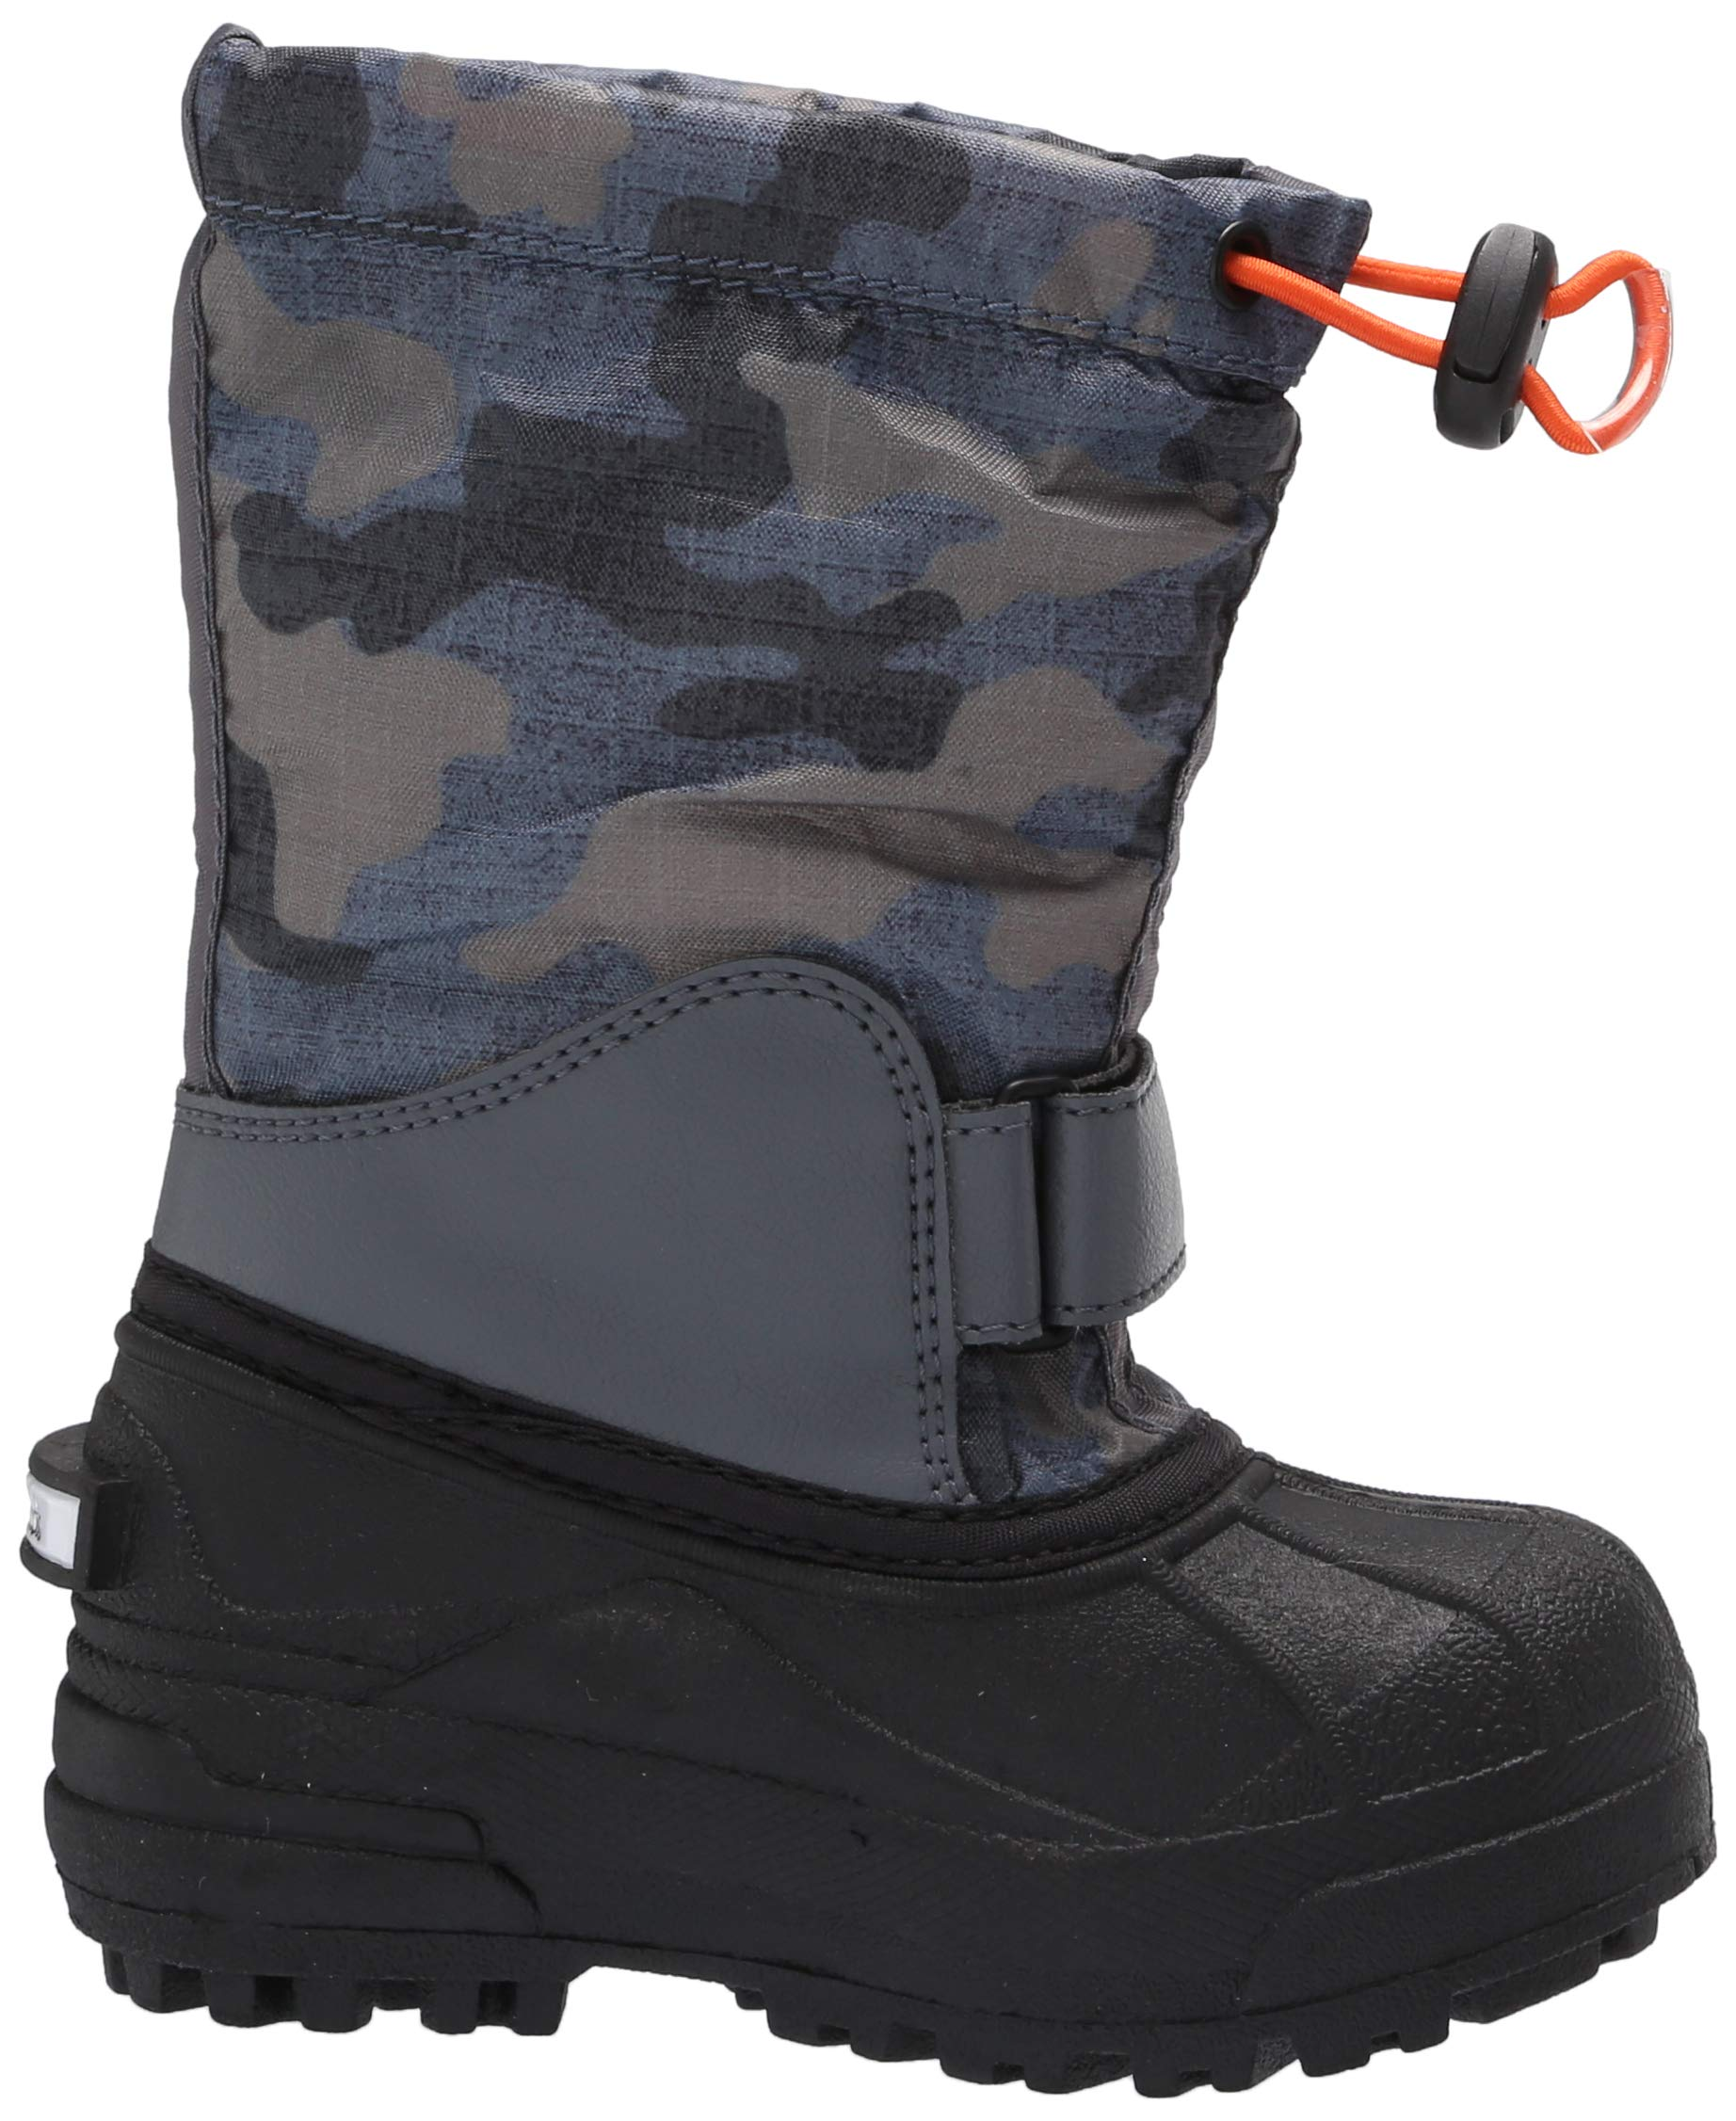 Columbia Boys' Childrens Powderbug Forty Print Snow Boot, Graphite, Heatwave, 8 Regular US Little Kid by Columbia (Image #7)